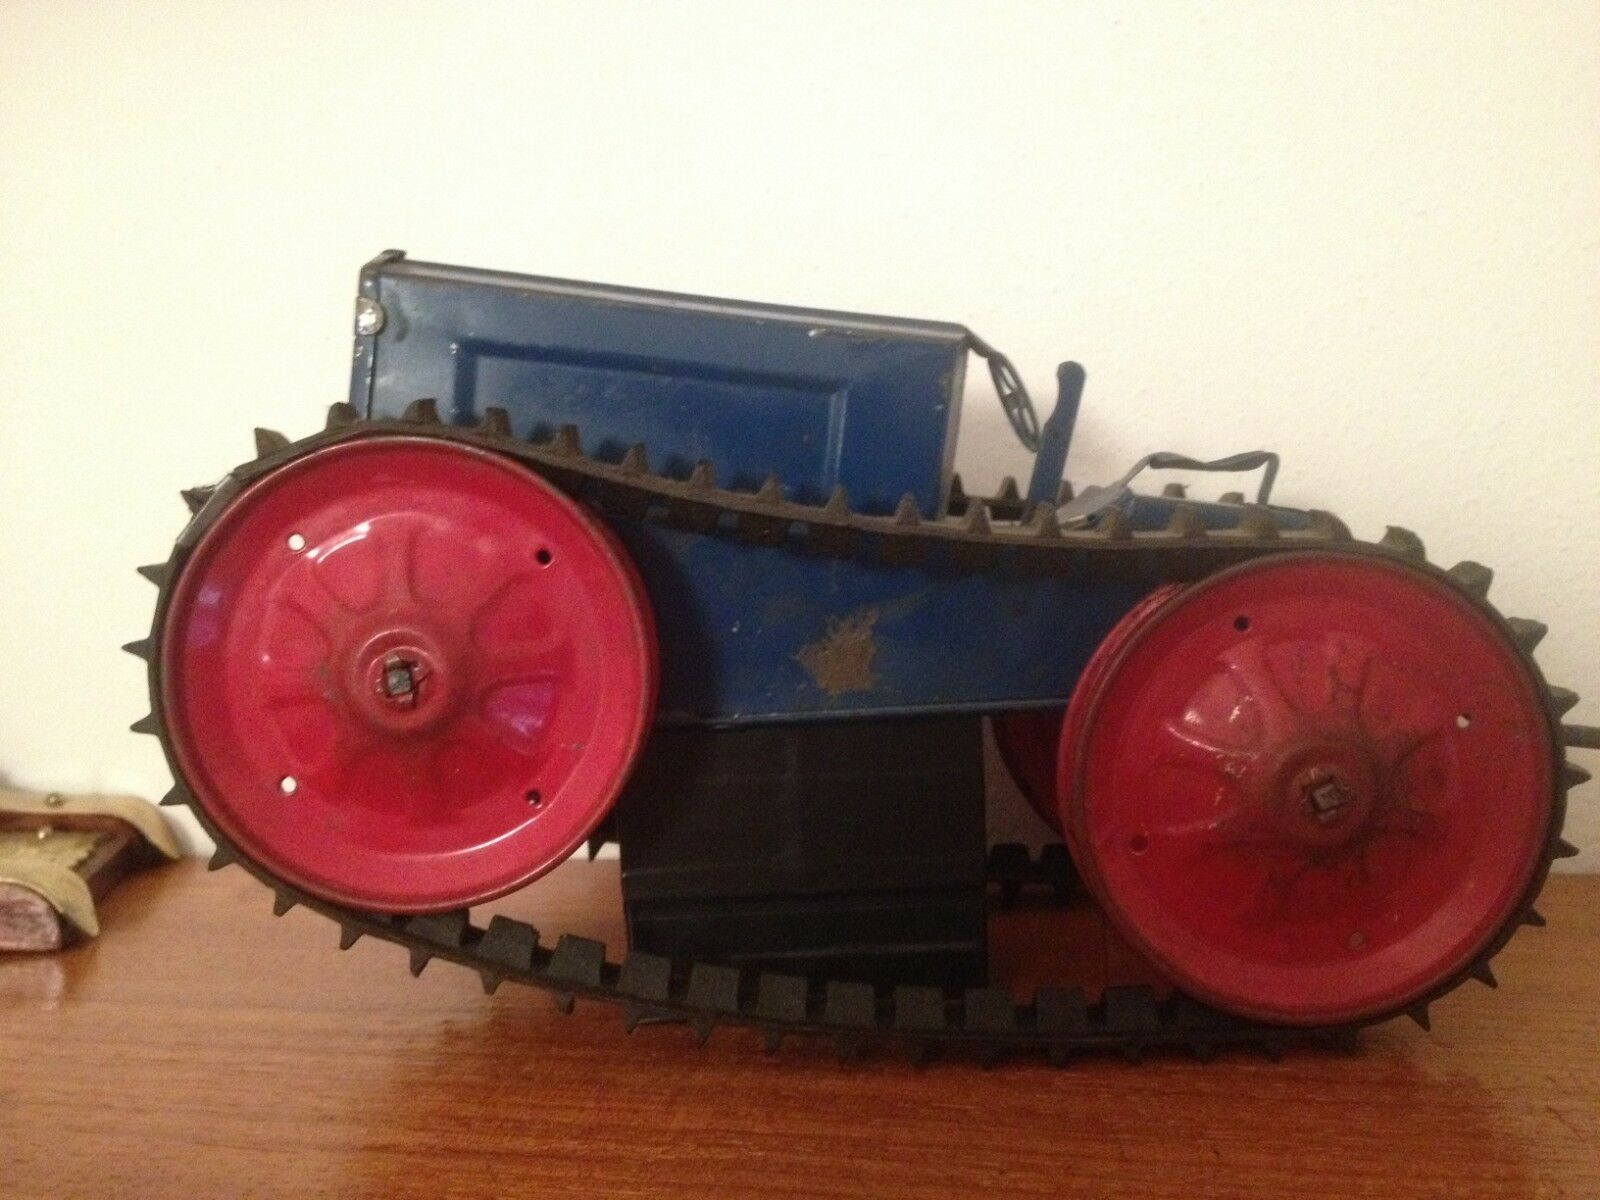 Trattore in latta carica a molla Woodhaven 1916 made U.S.A.  tractor tin toy